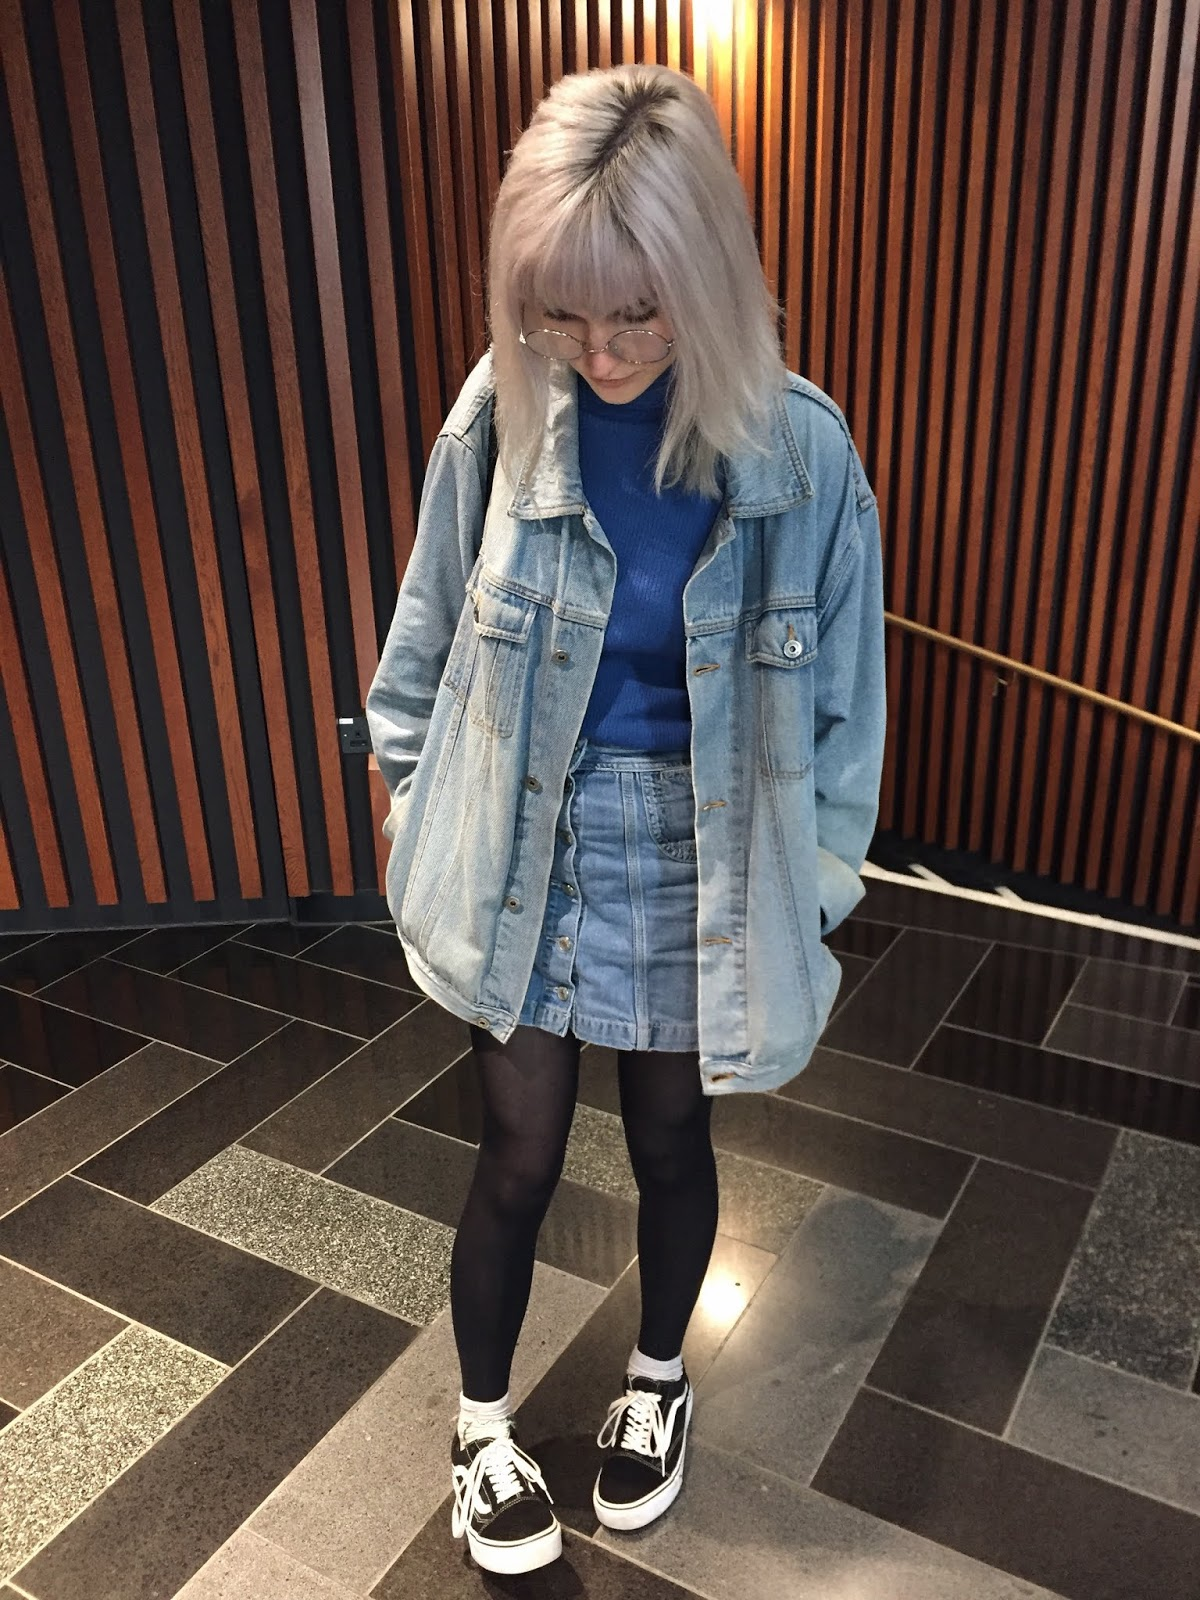 silver haired girl in denim jacket, denim skirt, vans and round glasses